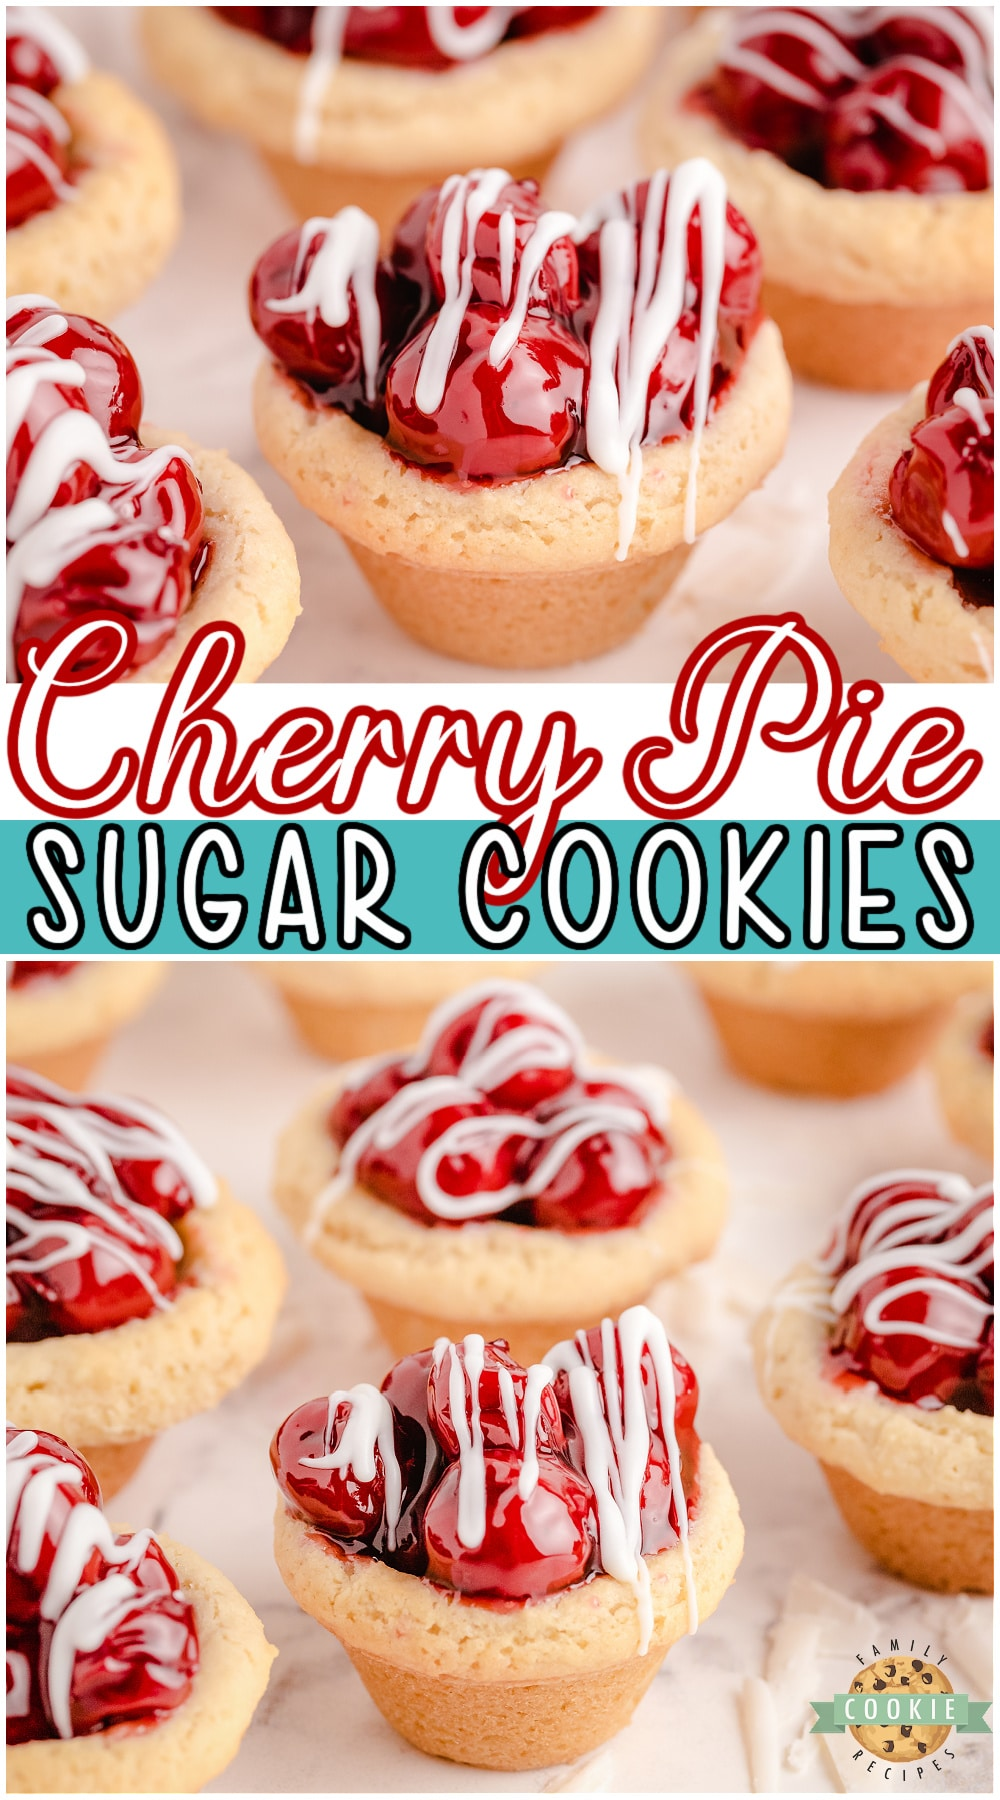 Cherry Pie Cookies are cherry pie in cookie form! Easy to make sugar cookies filled with sweet cherries and drizzled with white chocolate. #cookies #cherrypie #baking #dessert from FAMILY COOKIE RECIPES via @buttergirls